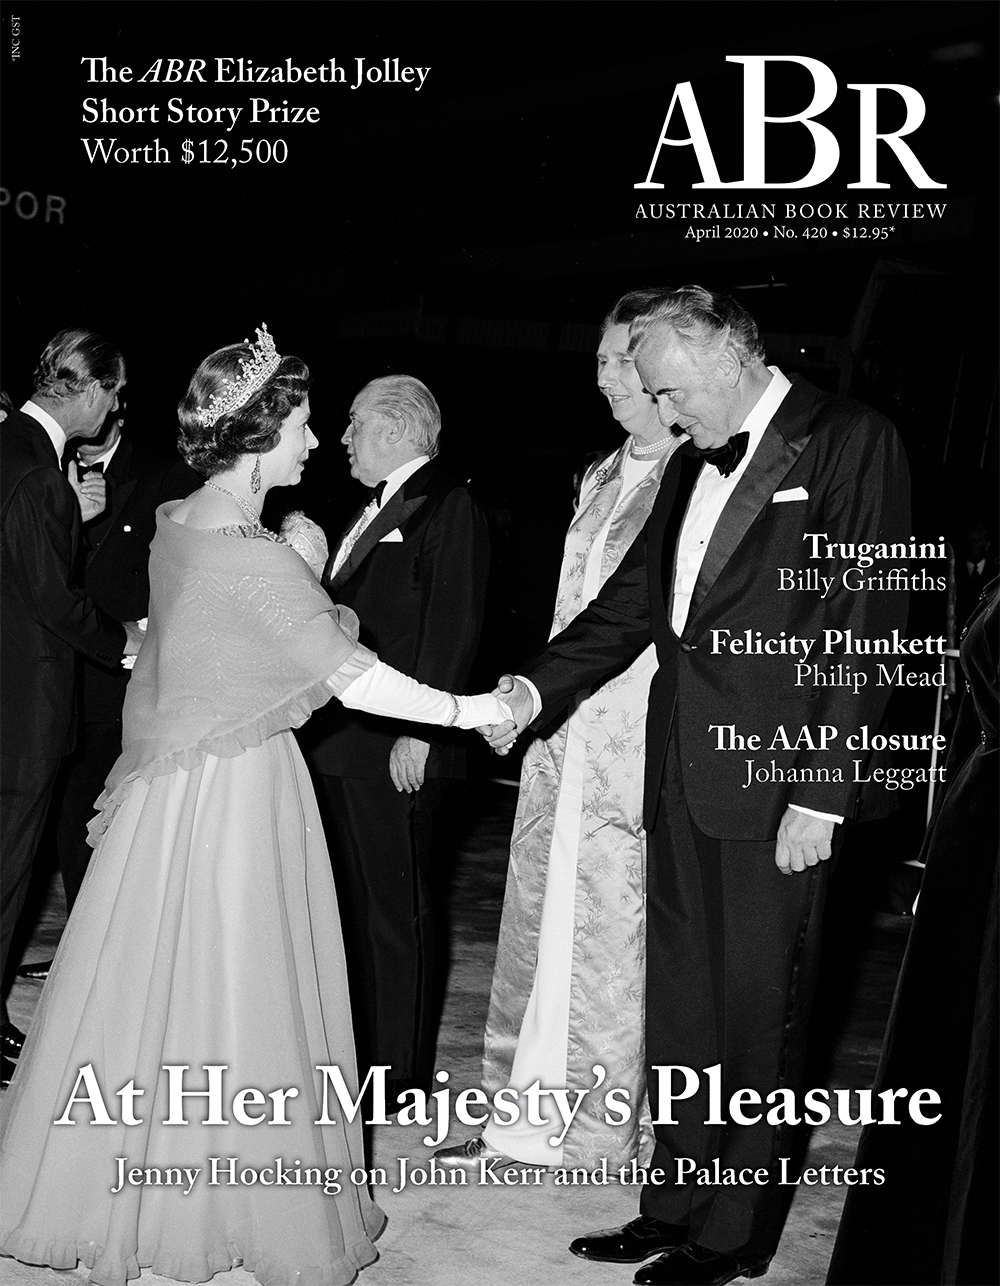 ABR March 2020 issue